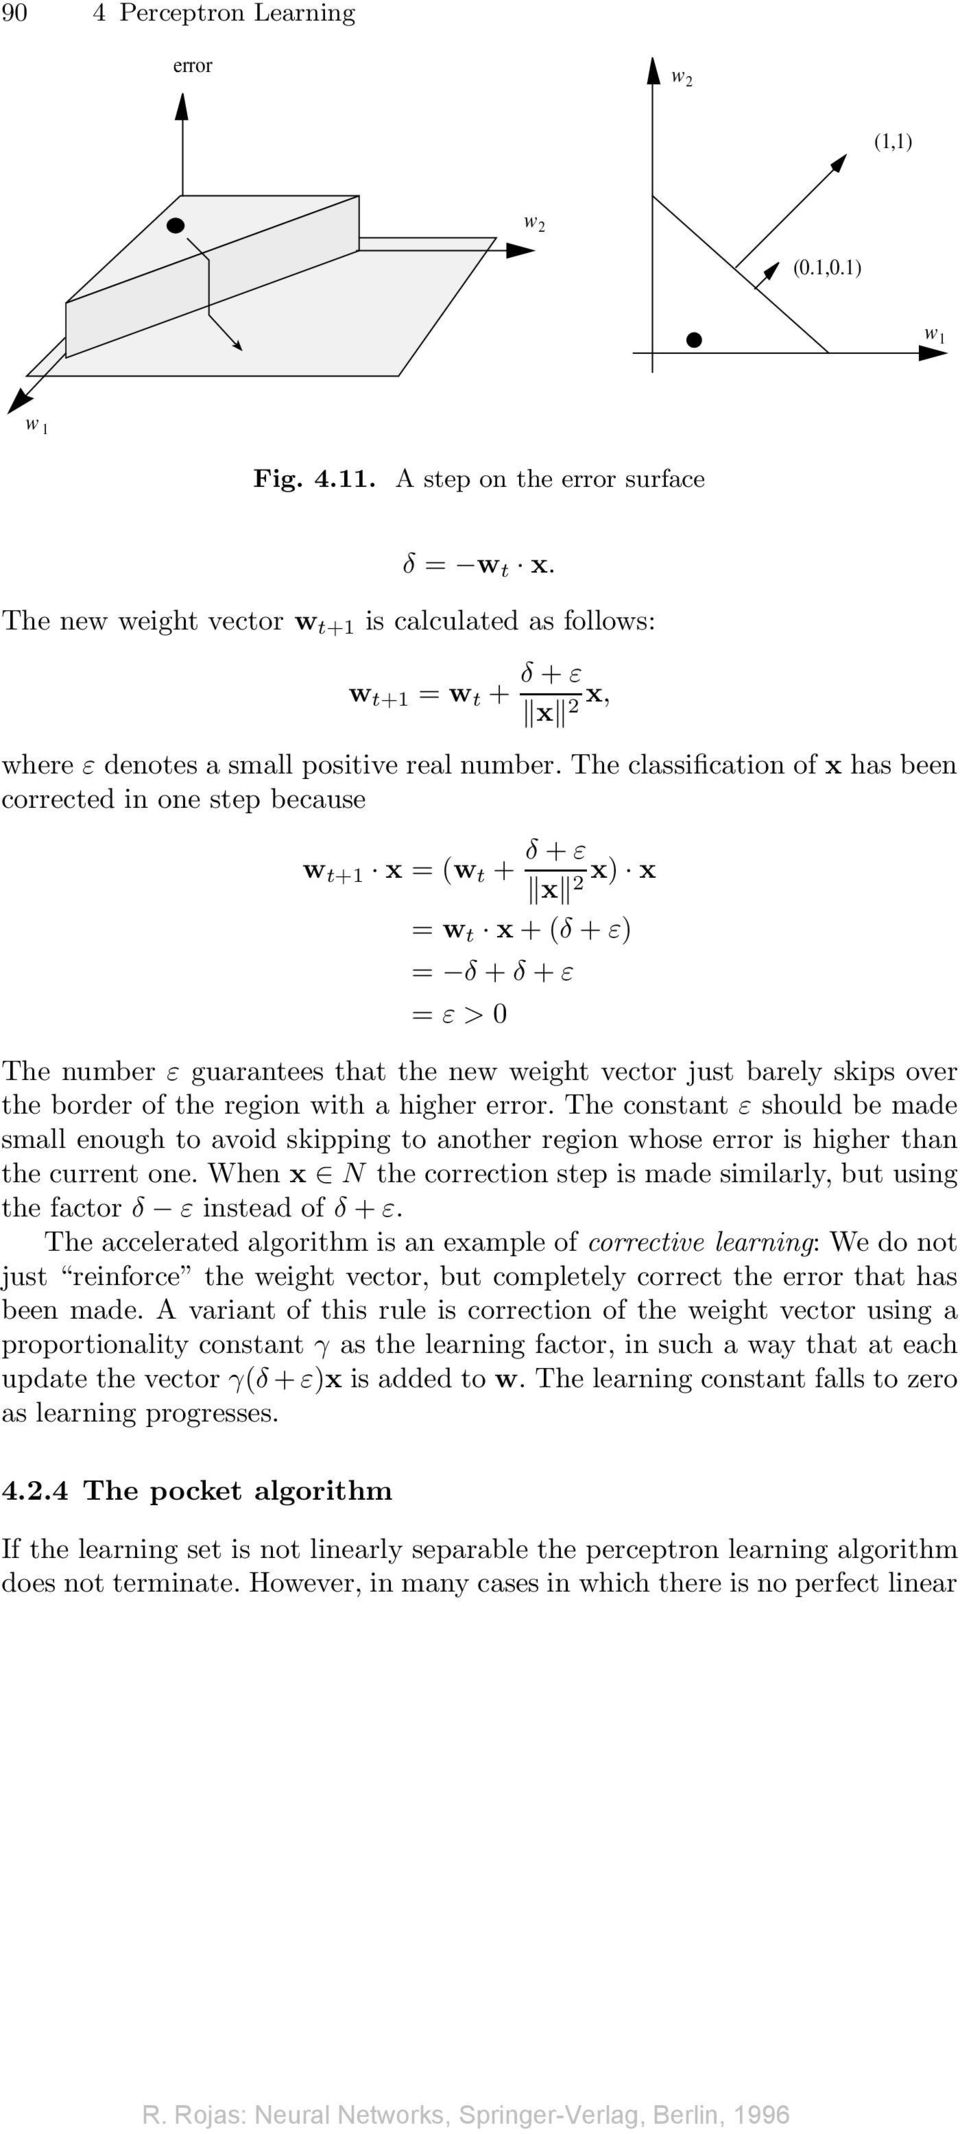 The classification of x has been corrected in one step because w t+1 x = (w t + δ + ε x 2 x) x = w t x + (δ + ε) = δ + δ + ε = ε > 0 The number ε guarantees that the new weight vector just barely